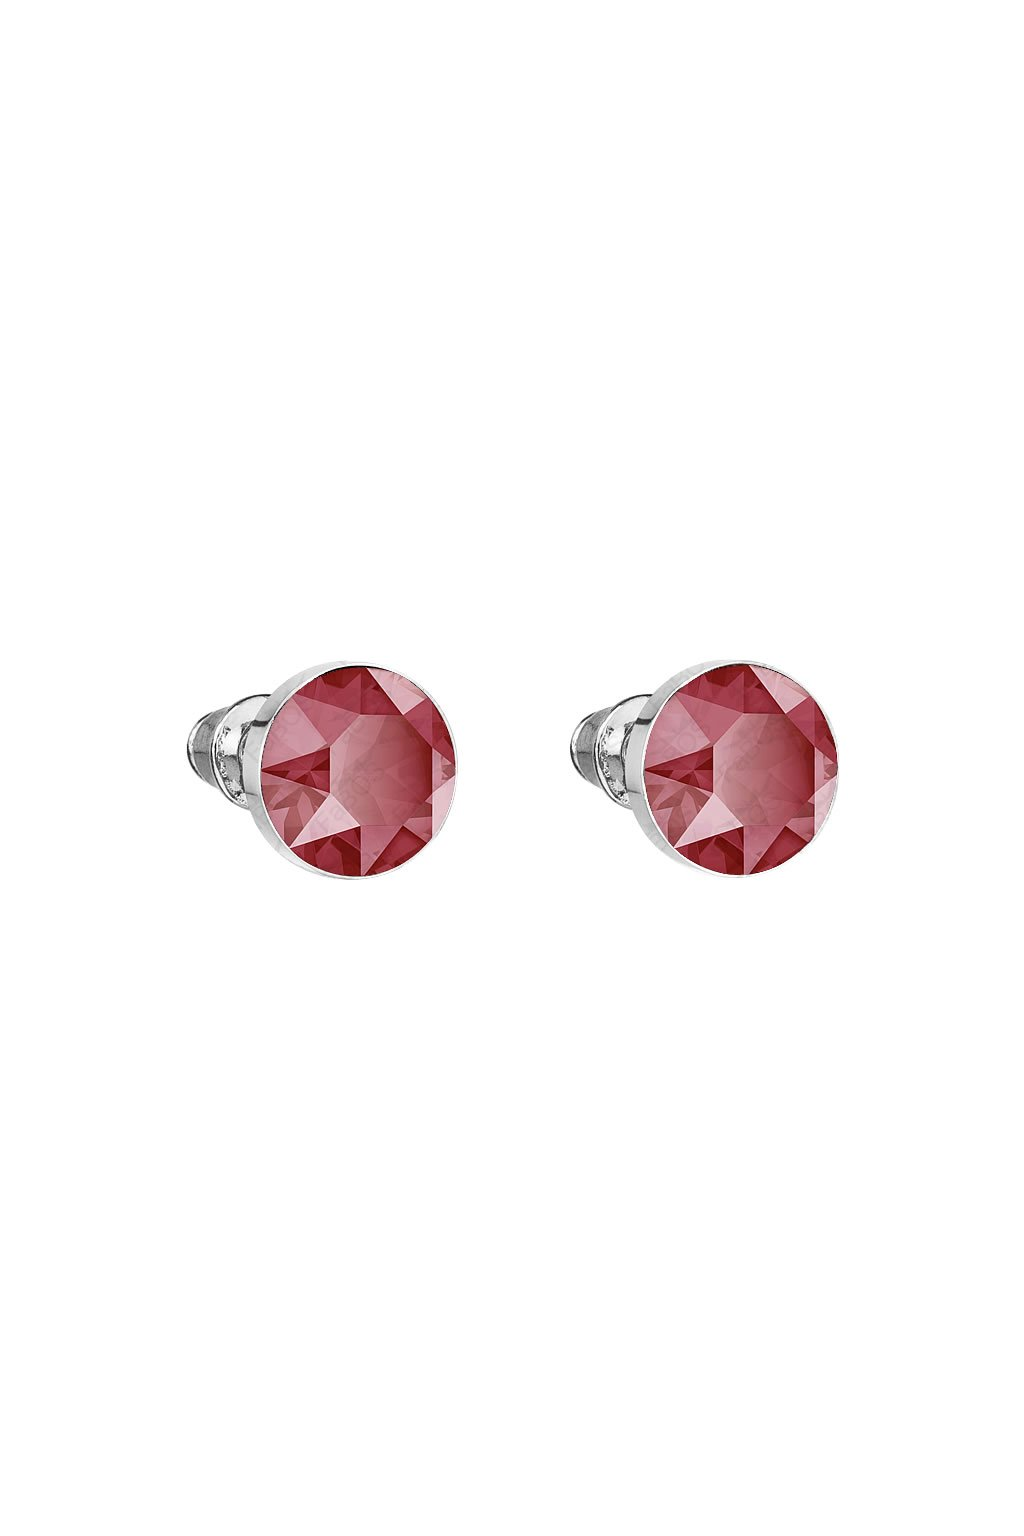 Náušnice Šaton 8mm puzeta Royal Red Swarovski